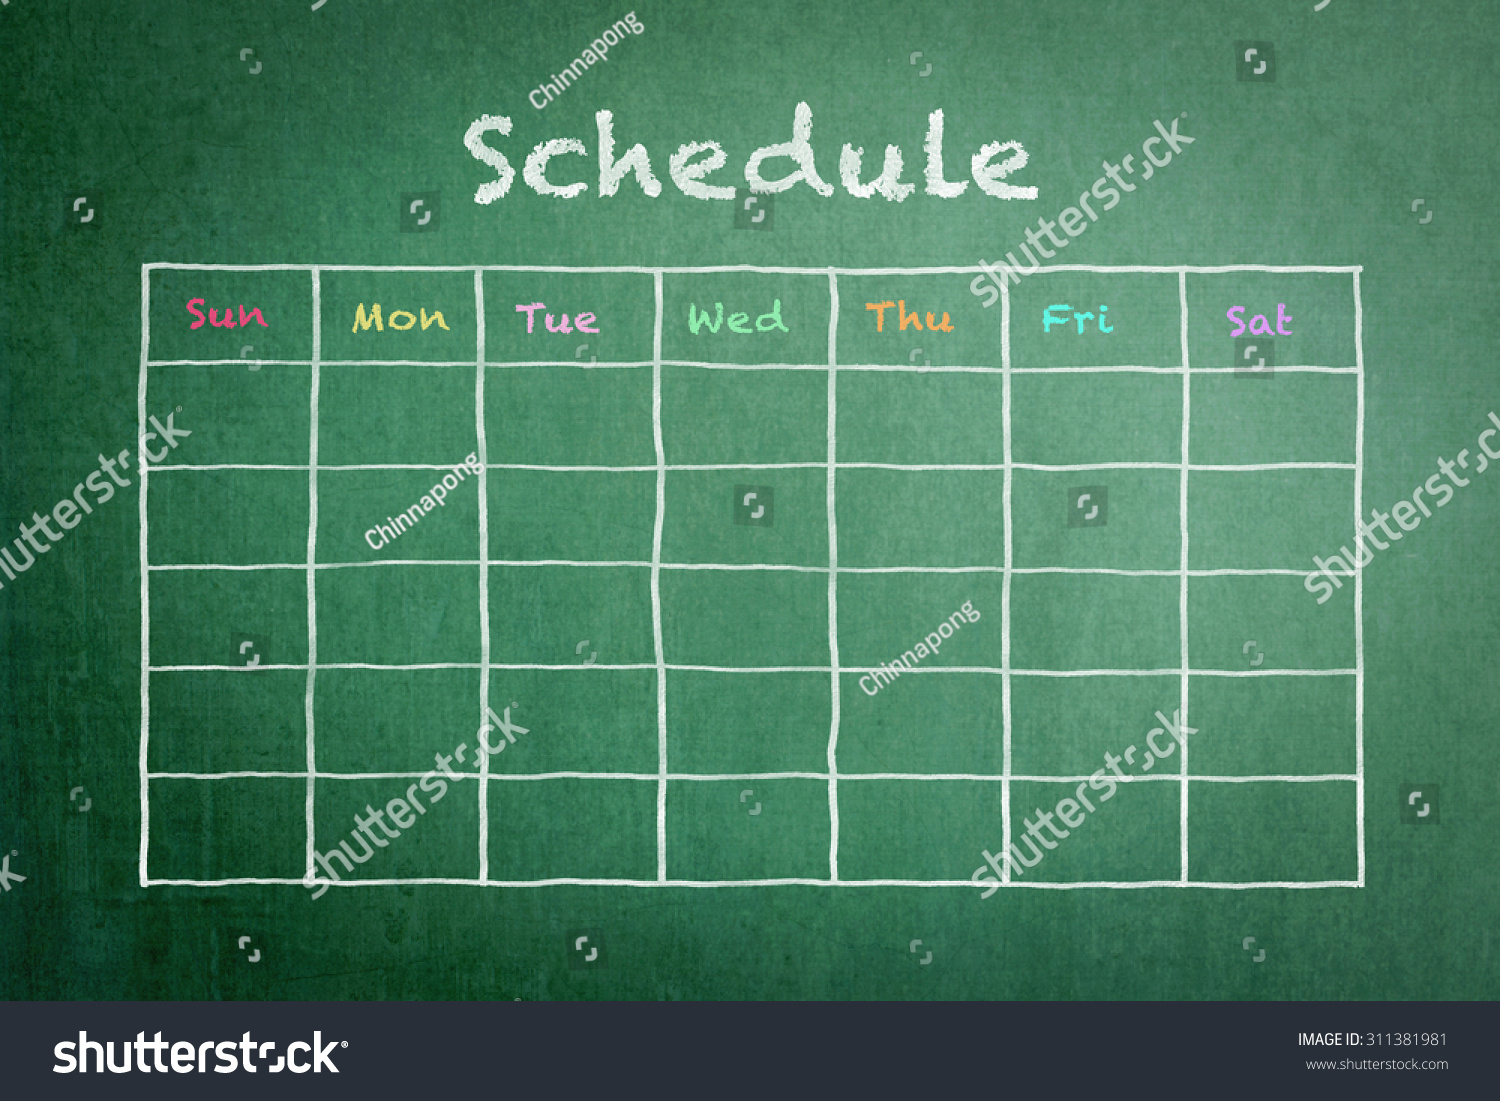 hand white chalk doodle sketch blank stock photo  hand white chalk doodle sketch of blank monthly grid timetable schedule on green chalkboard background